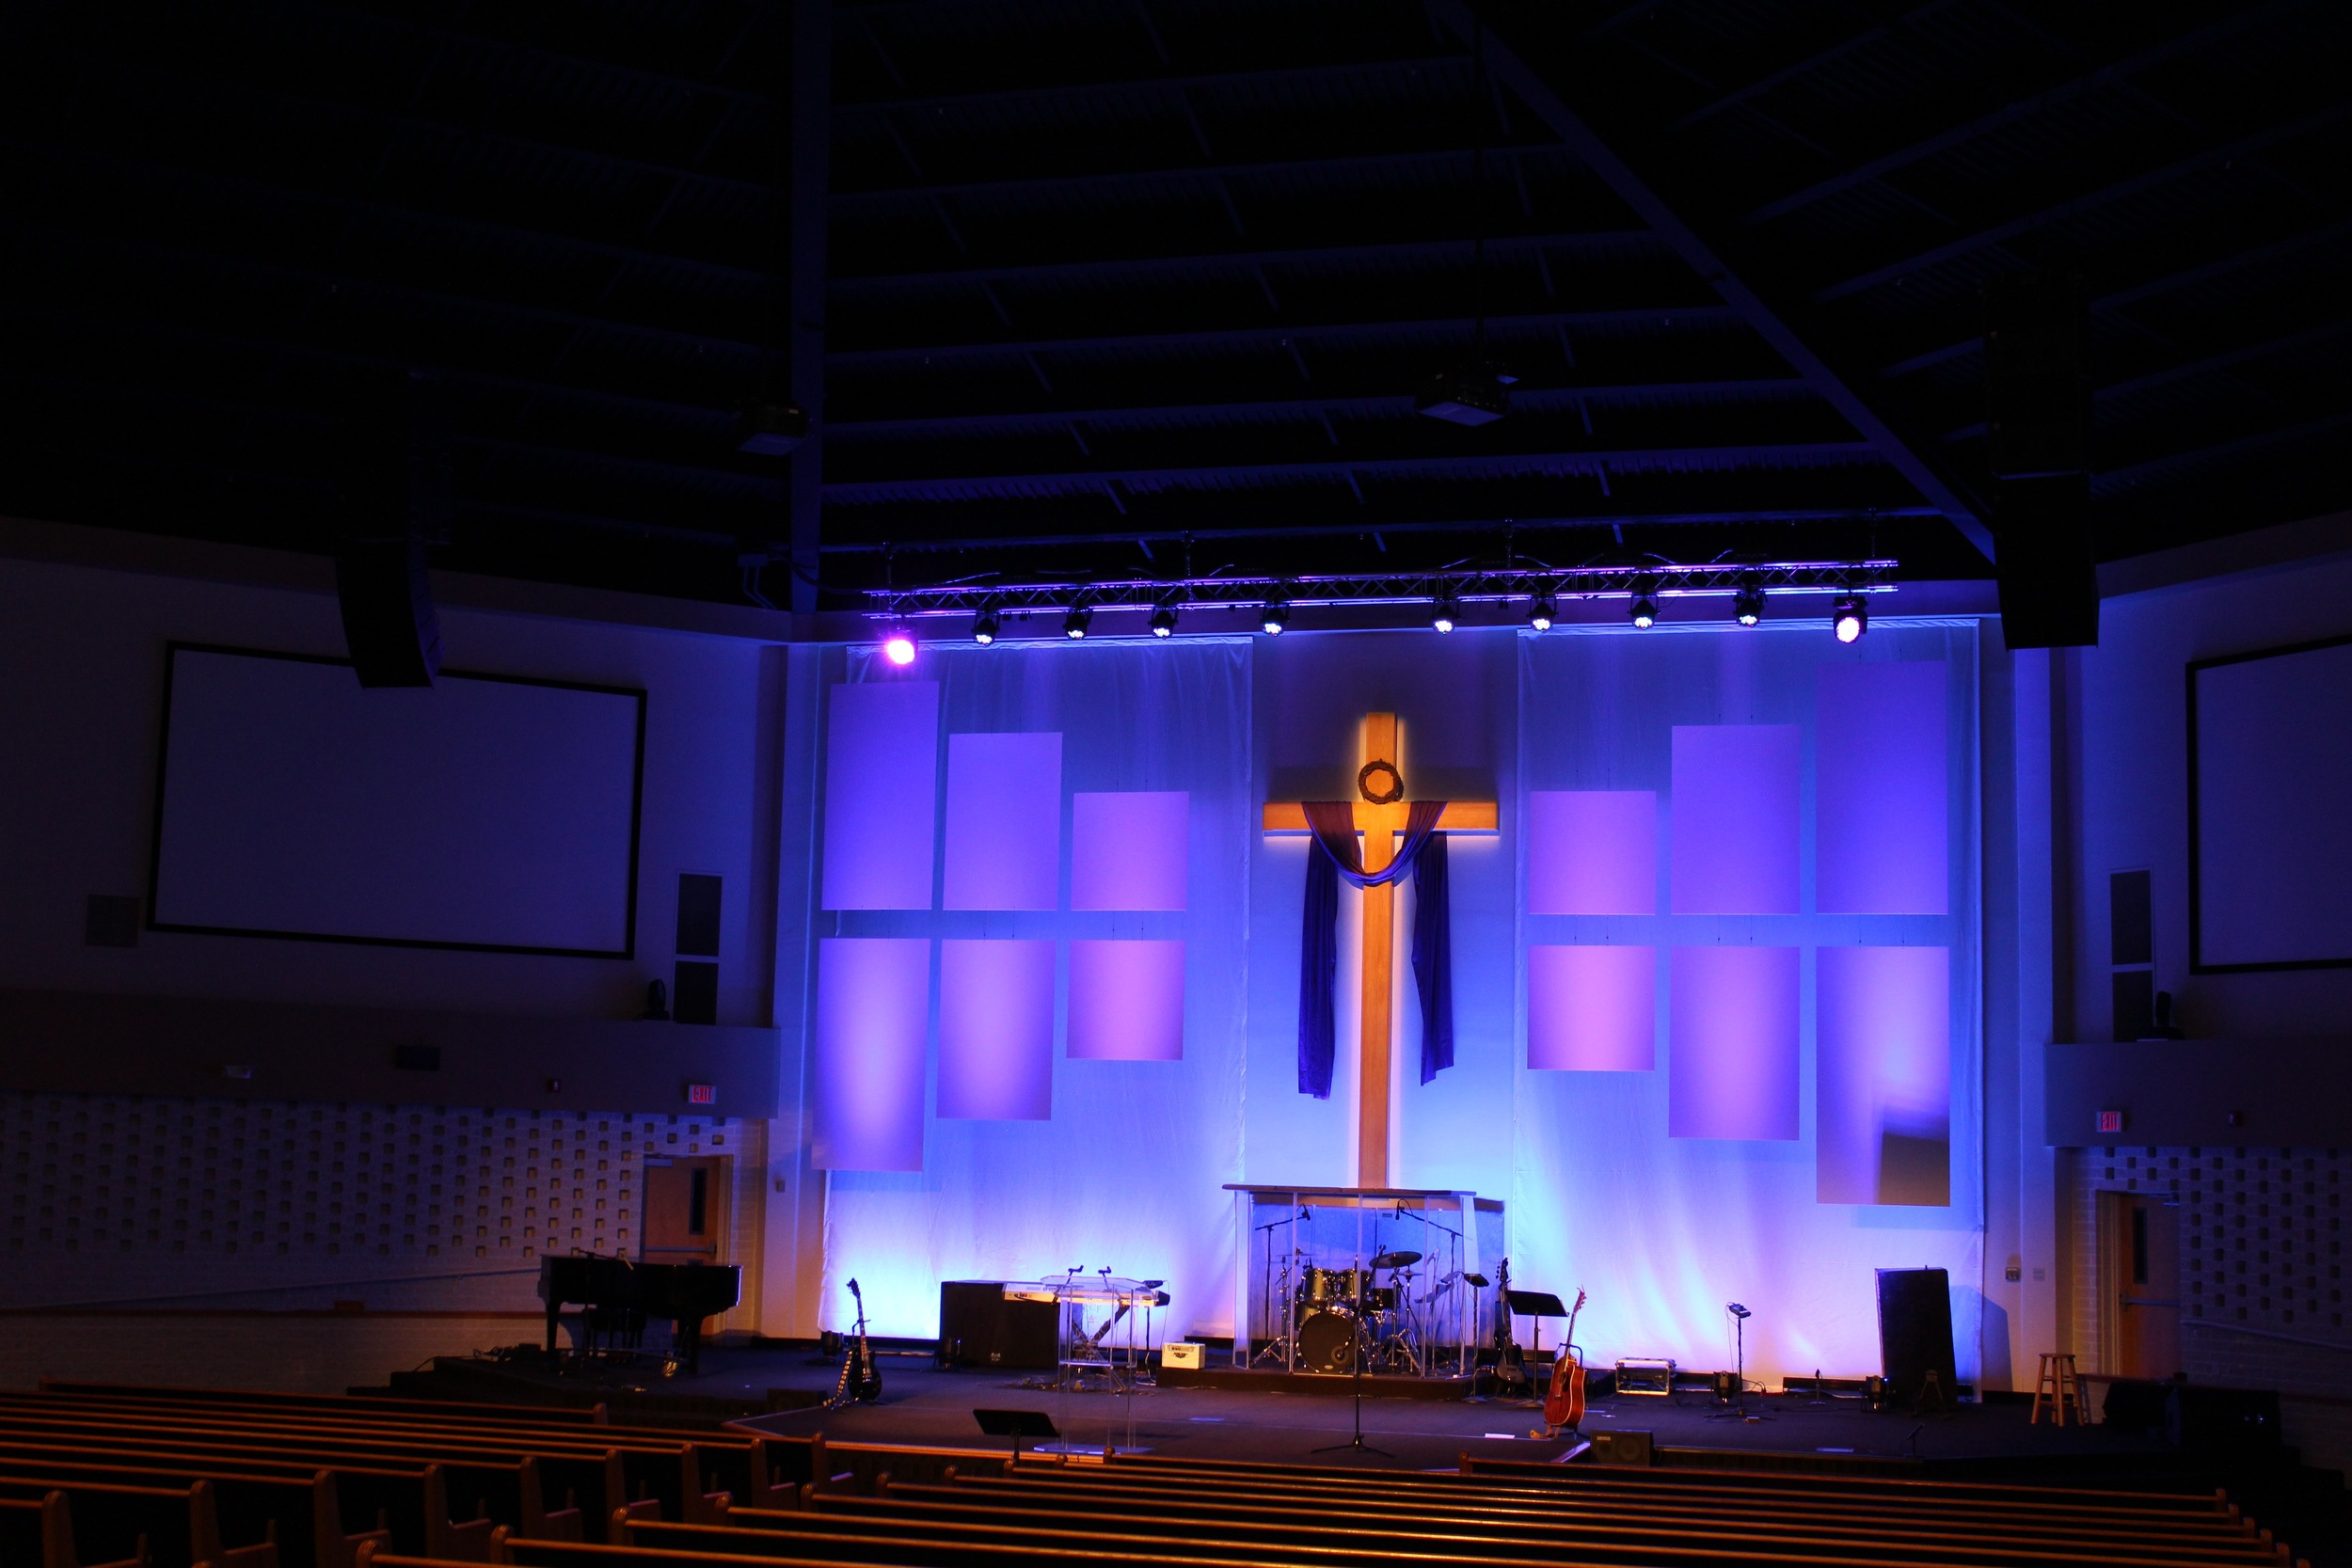 Chesapeake_Christian_Fellowship_Church_18.jpg